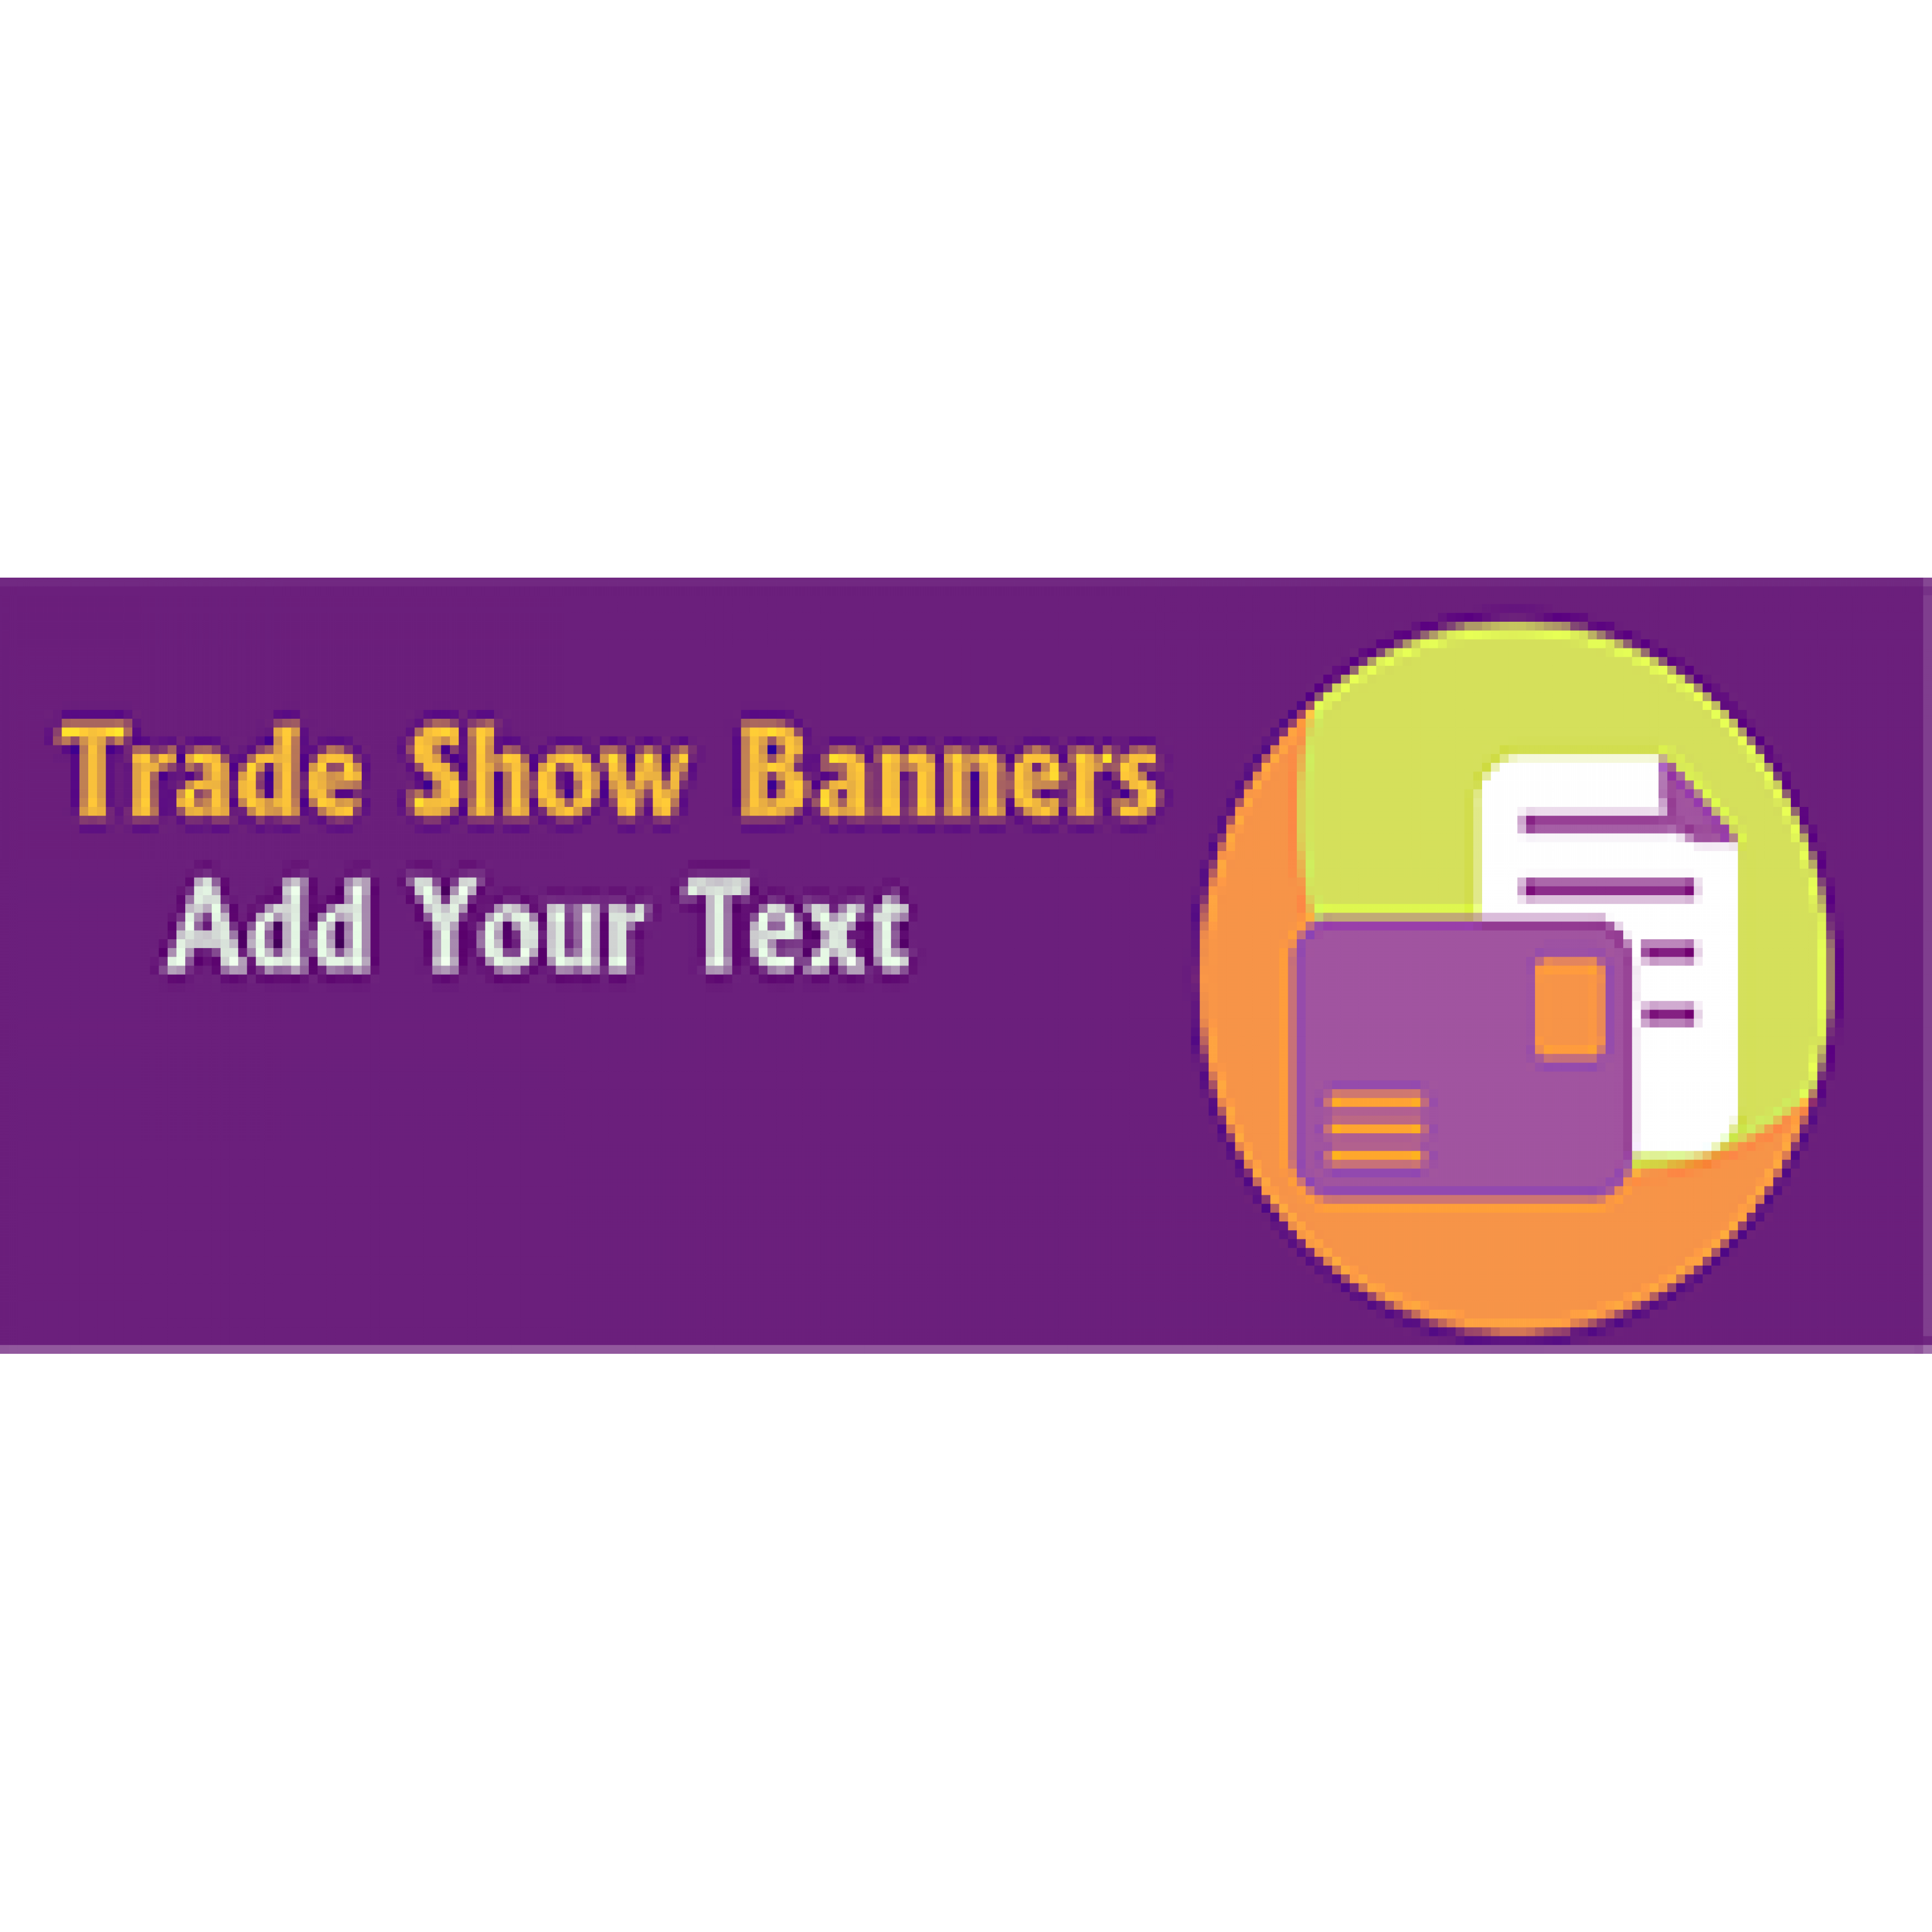 Trade Show Banner 24x72 inches